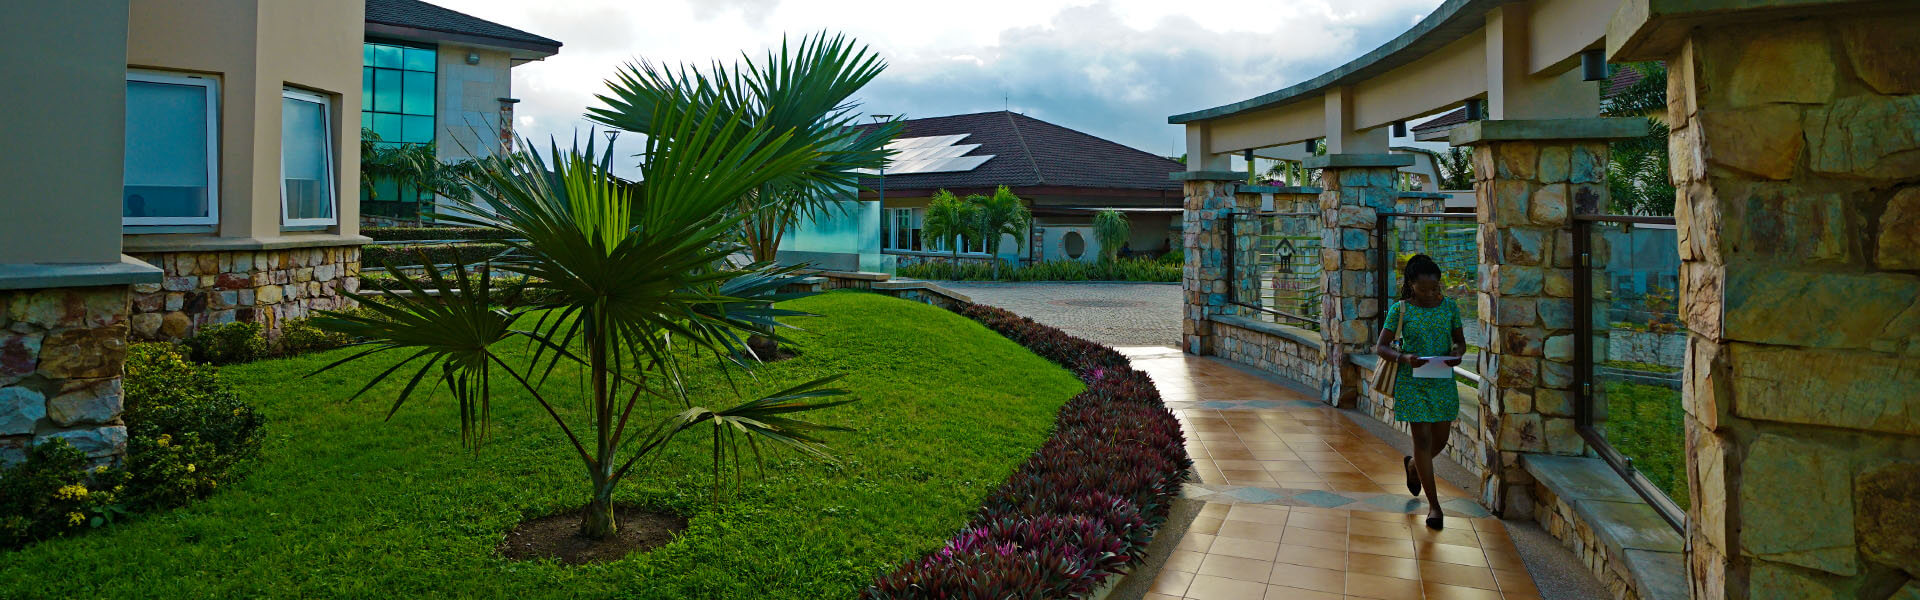 About Quick Facts Ashesi - COVID-19 and Higher Education in Africa: Ashesi University Provides Strong Examples in its Response